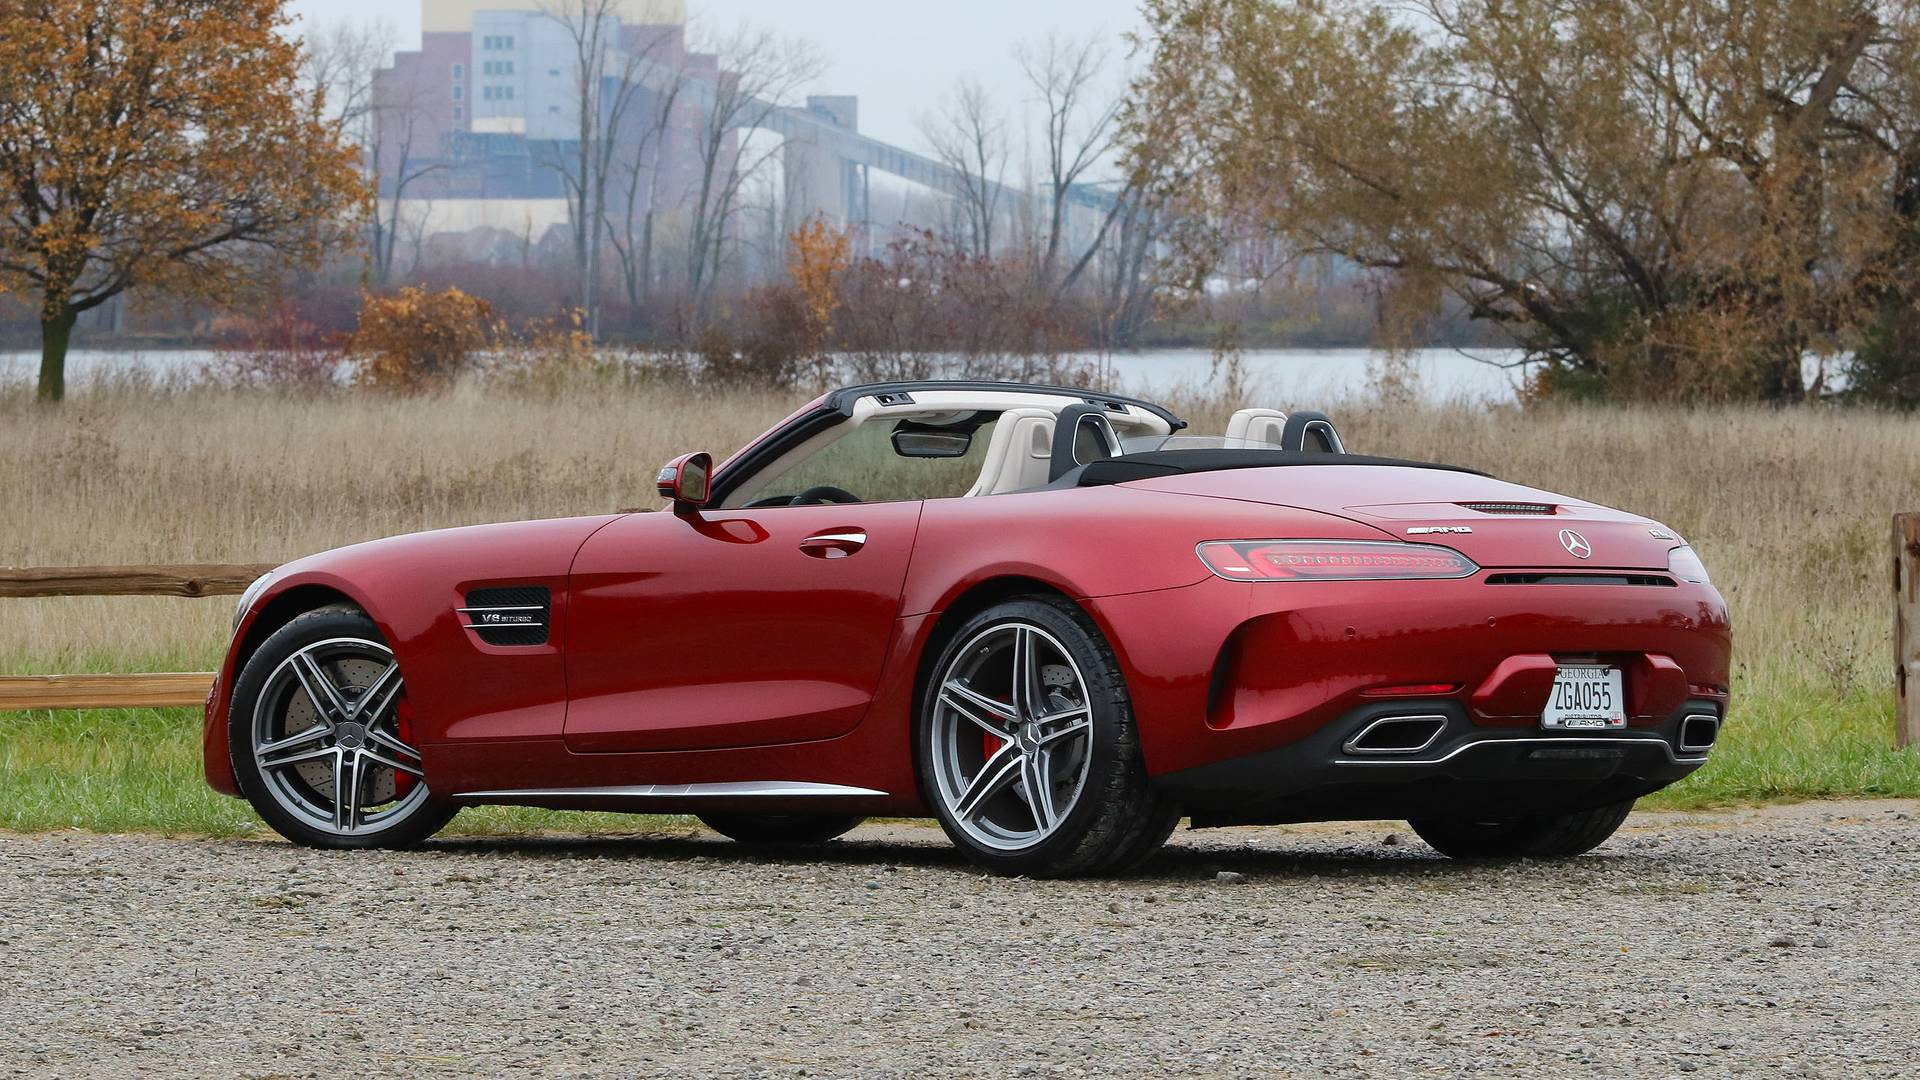 2018 Mercedes Amg Gt C Roadster Review 2746980